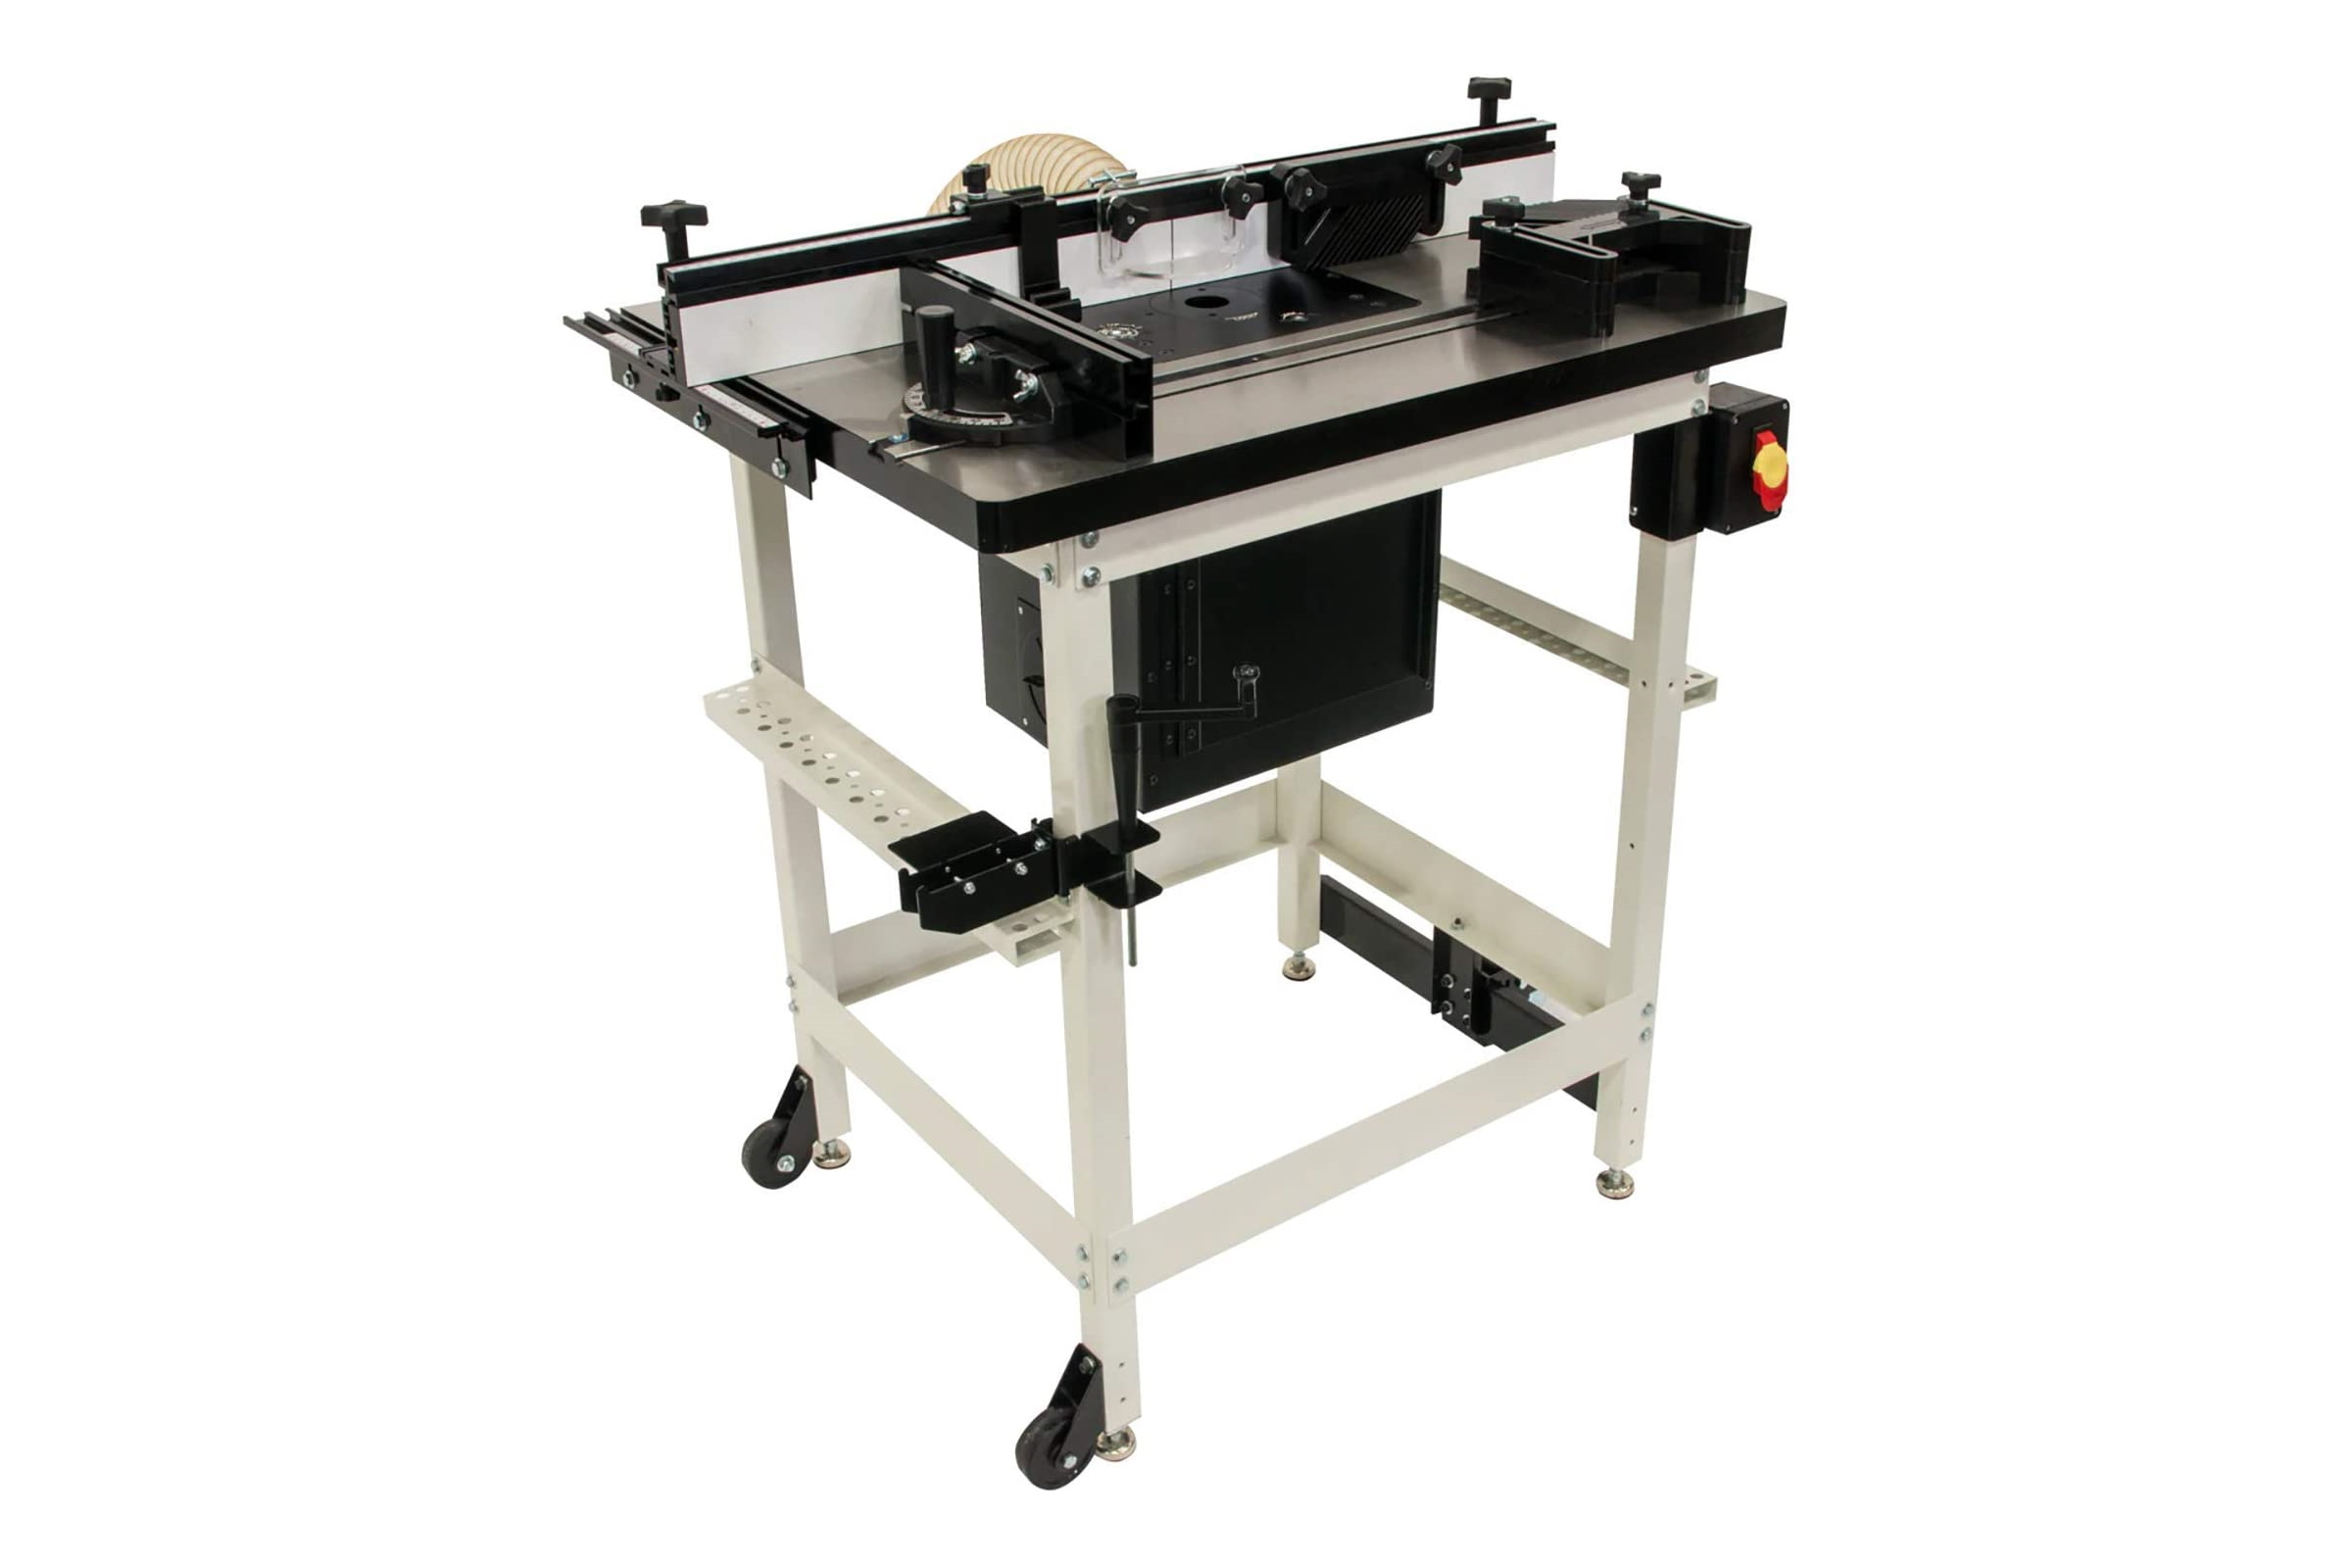 Jet 737000CK Cast iron router table with lift